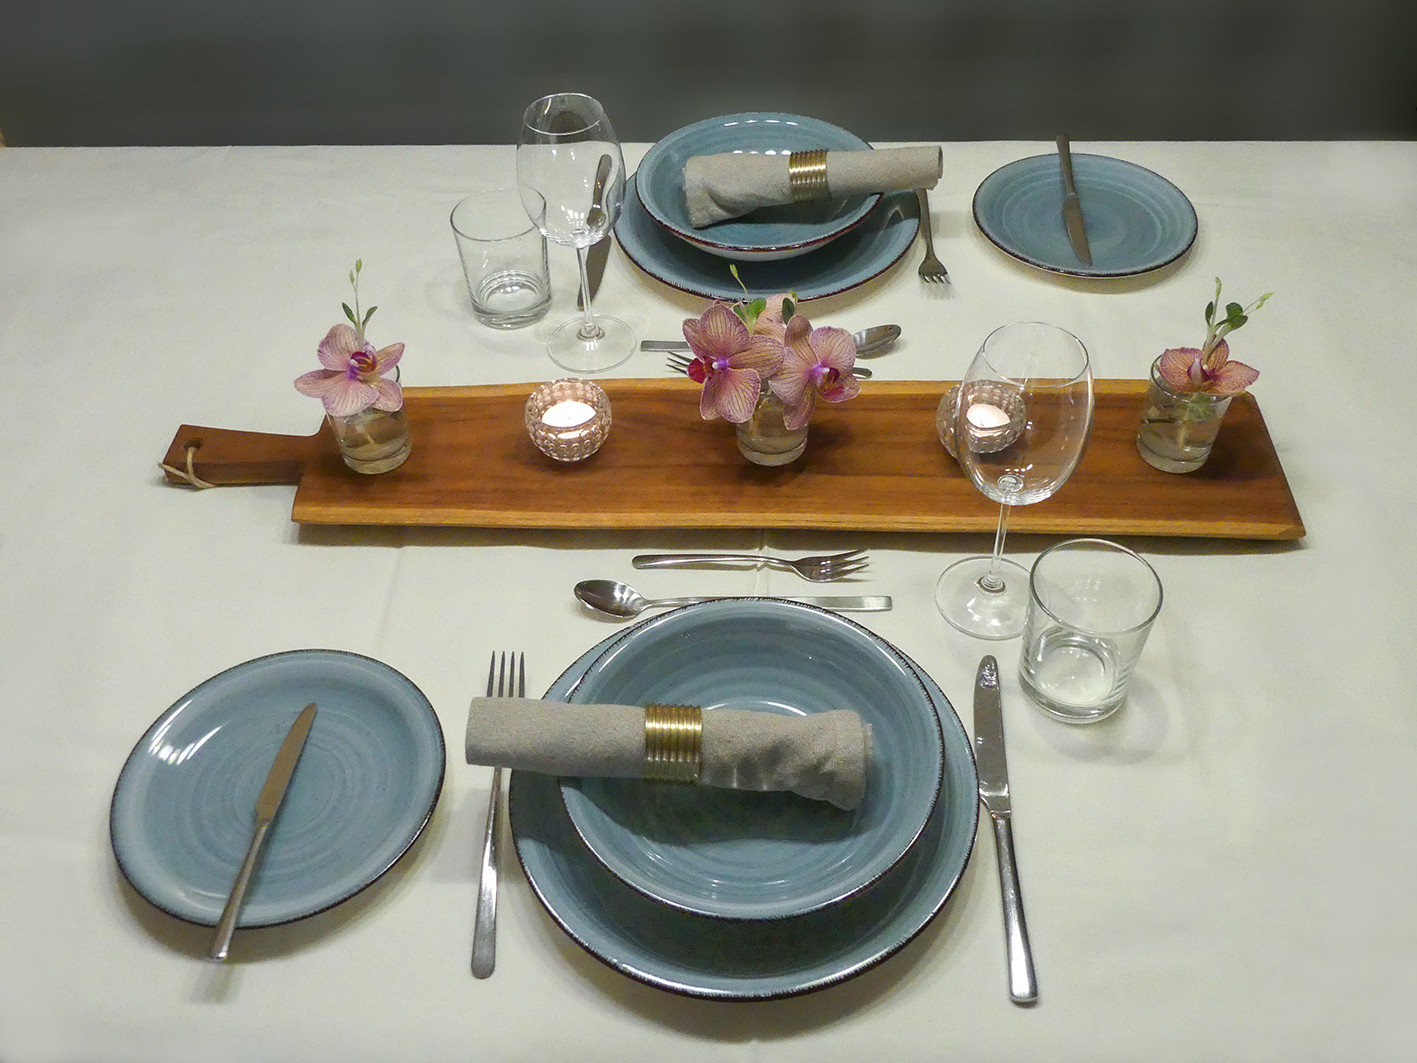 Table set.jpg